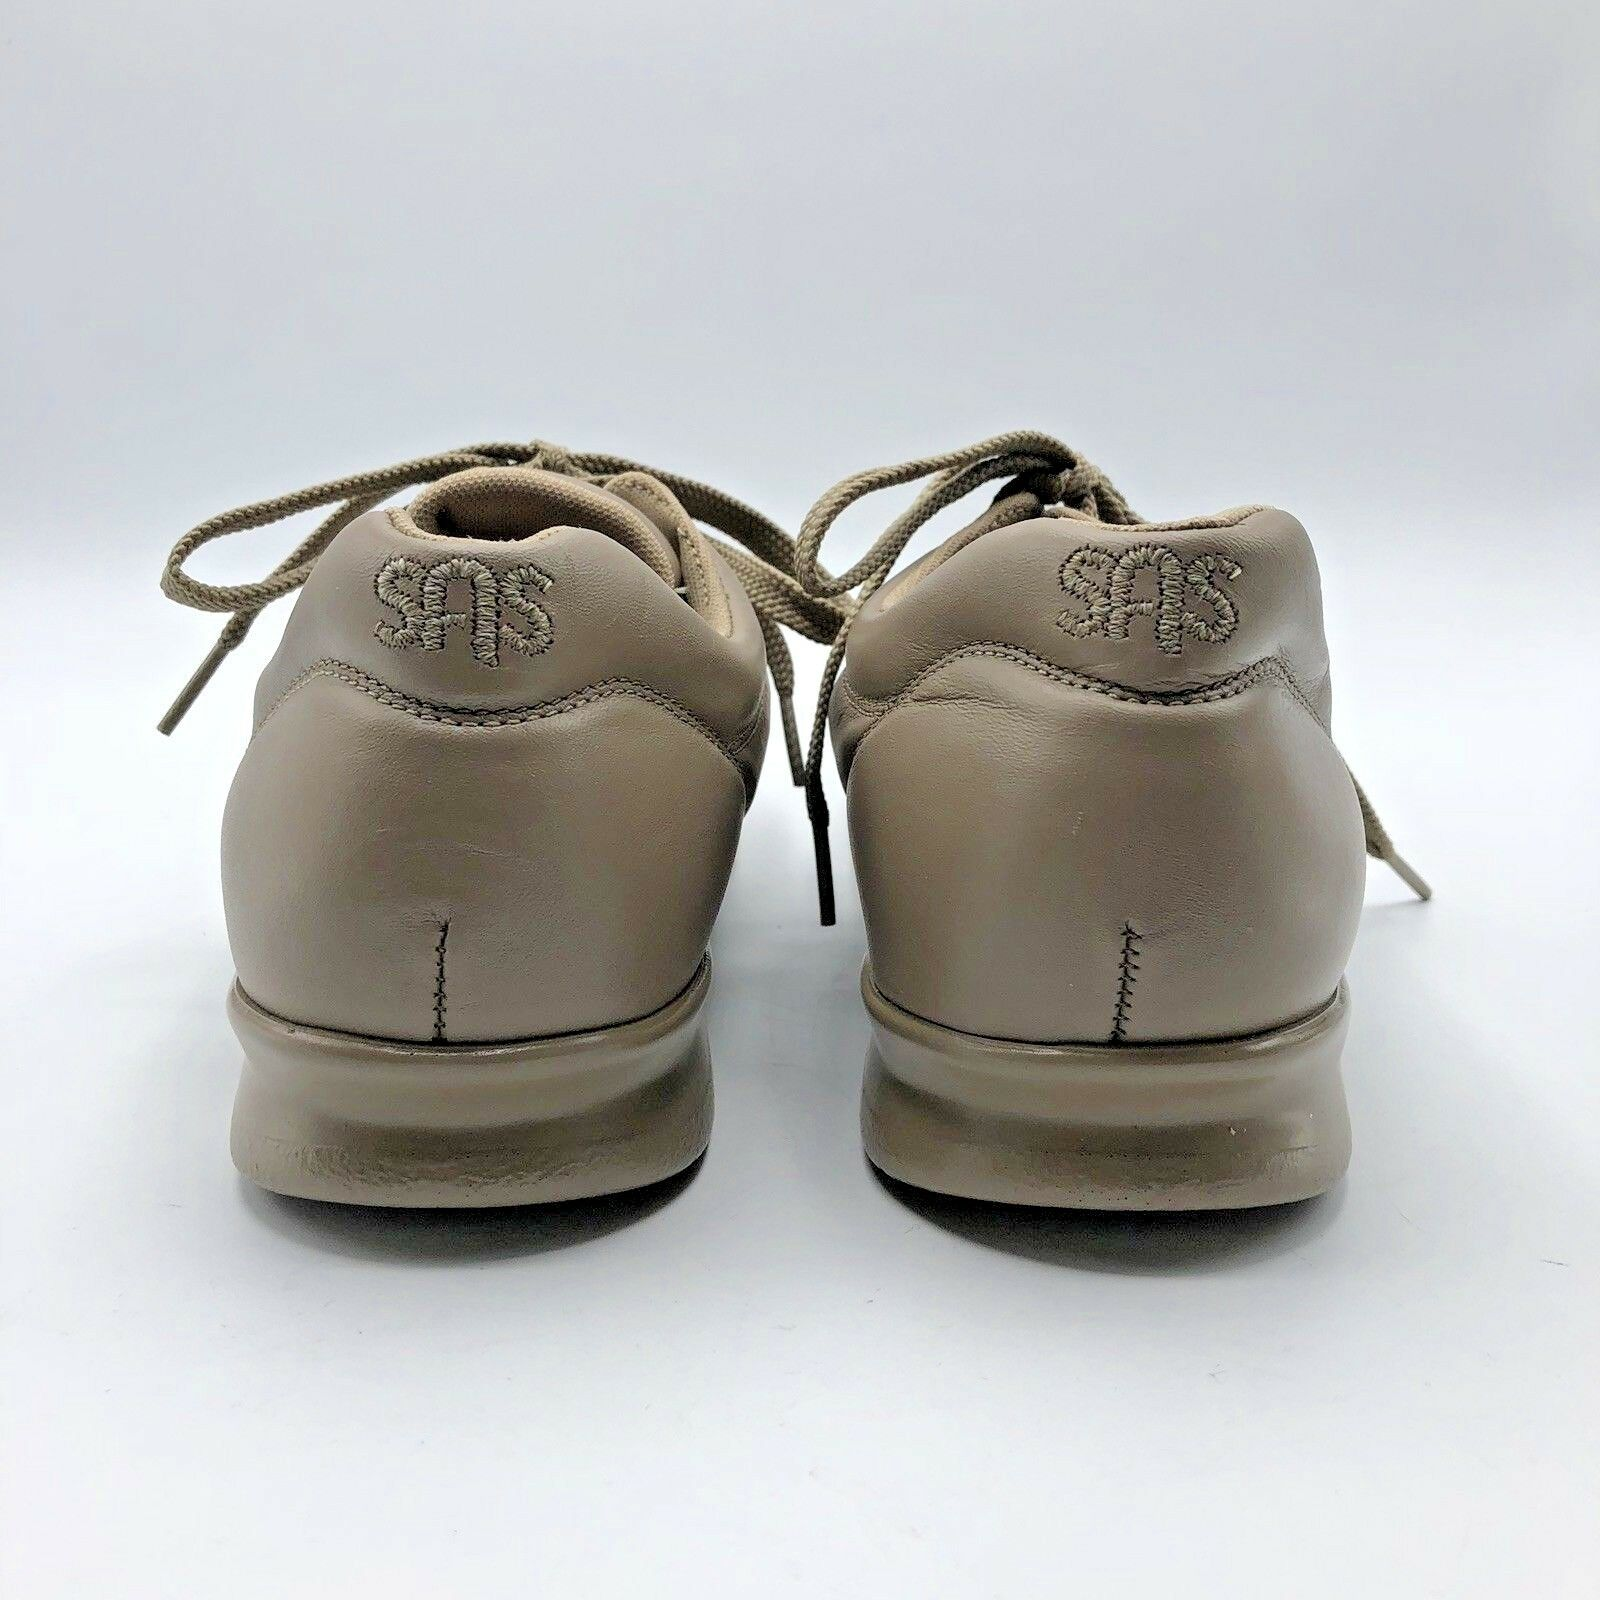 SAS Free Time 75960087 75960087 75960087 Women Beige Lace Up Comfort Walking shoes SZ 10S Pre Owned 521811